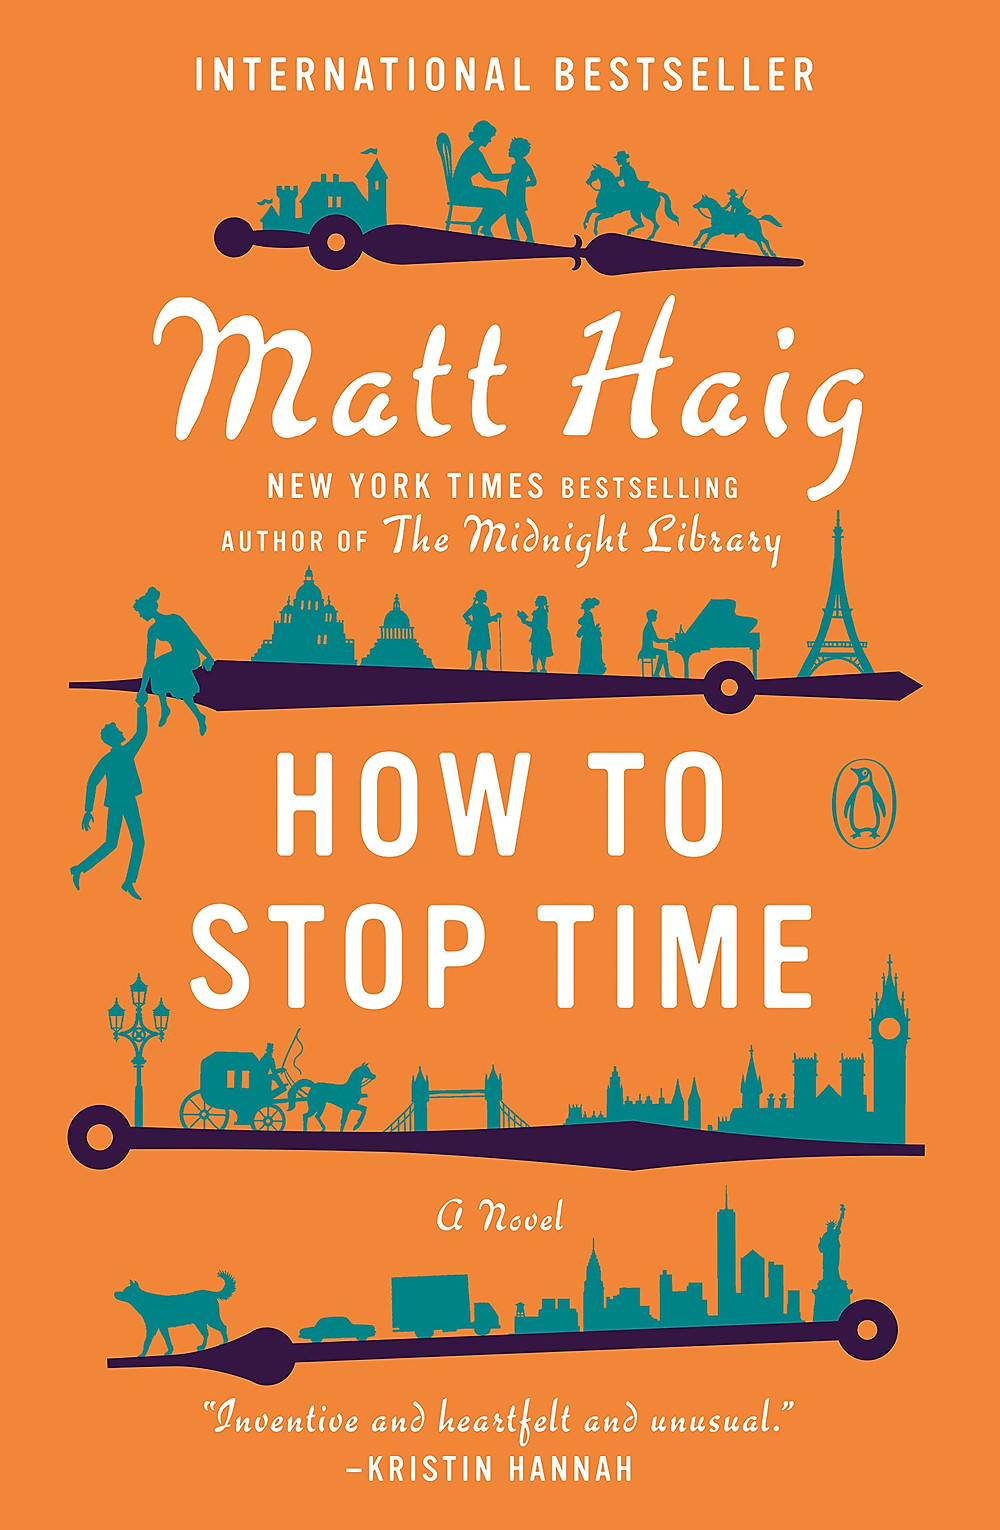 Review of How to Stop Time by Matt Haig